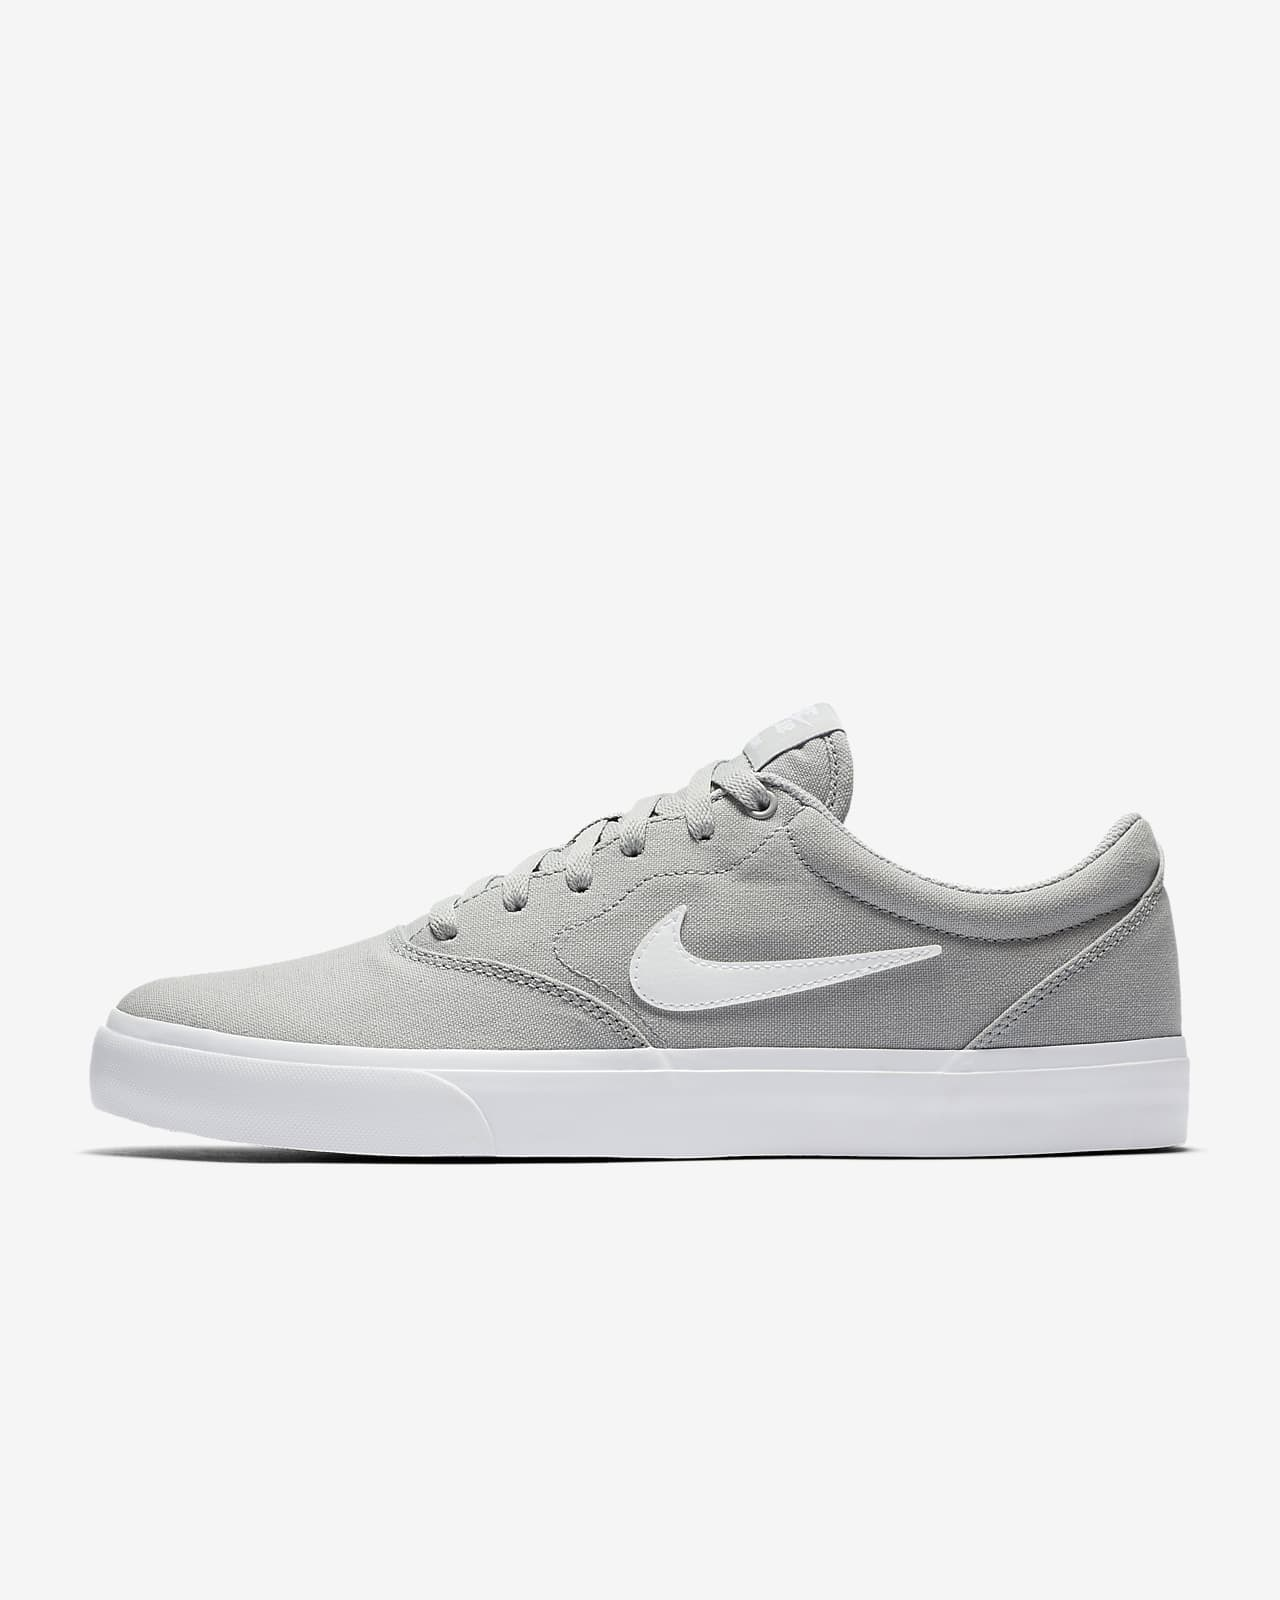 Nike SB Charge Canvas Skate Shoe